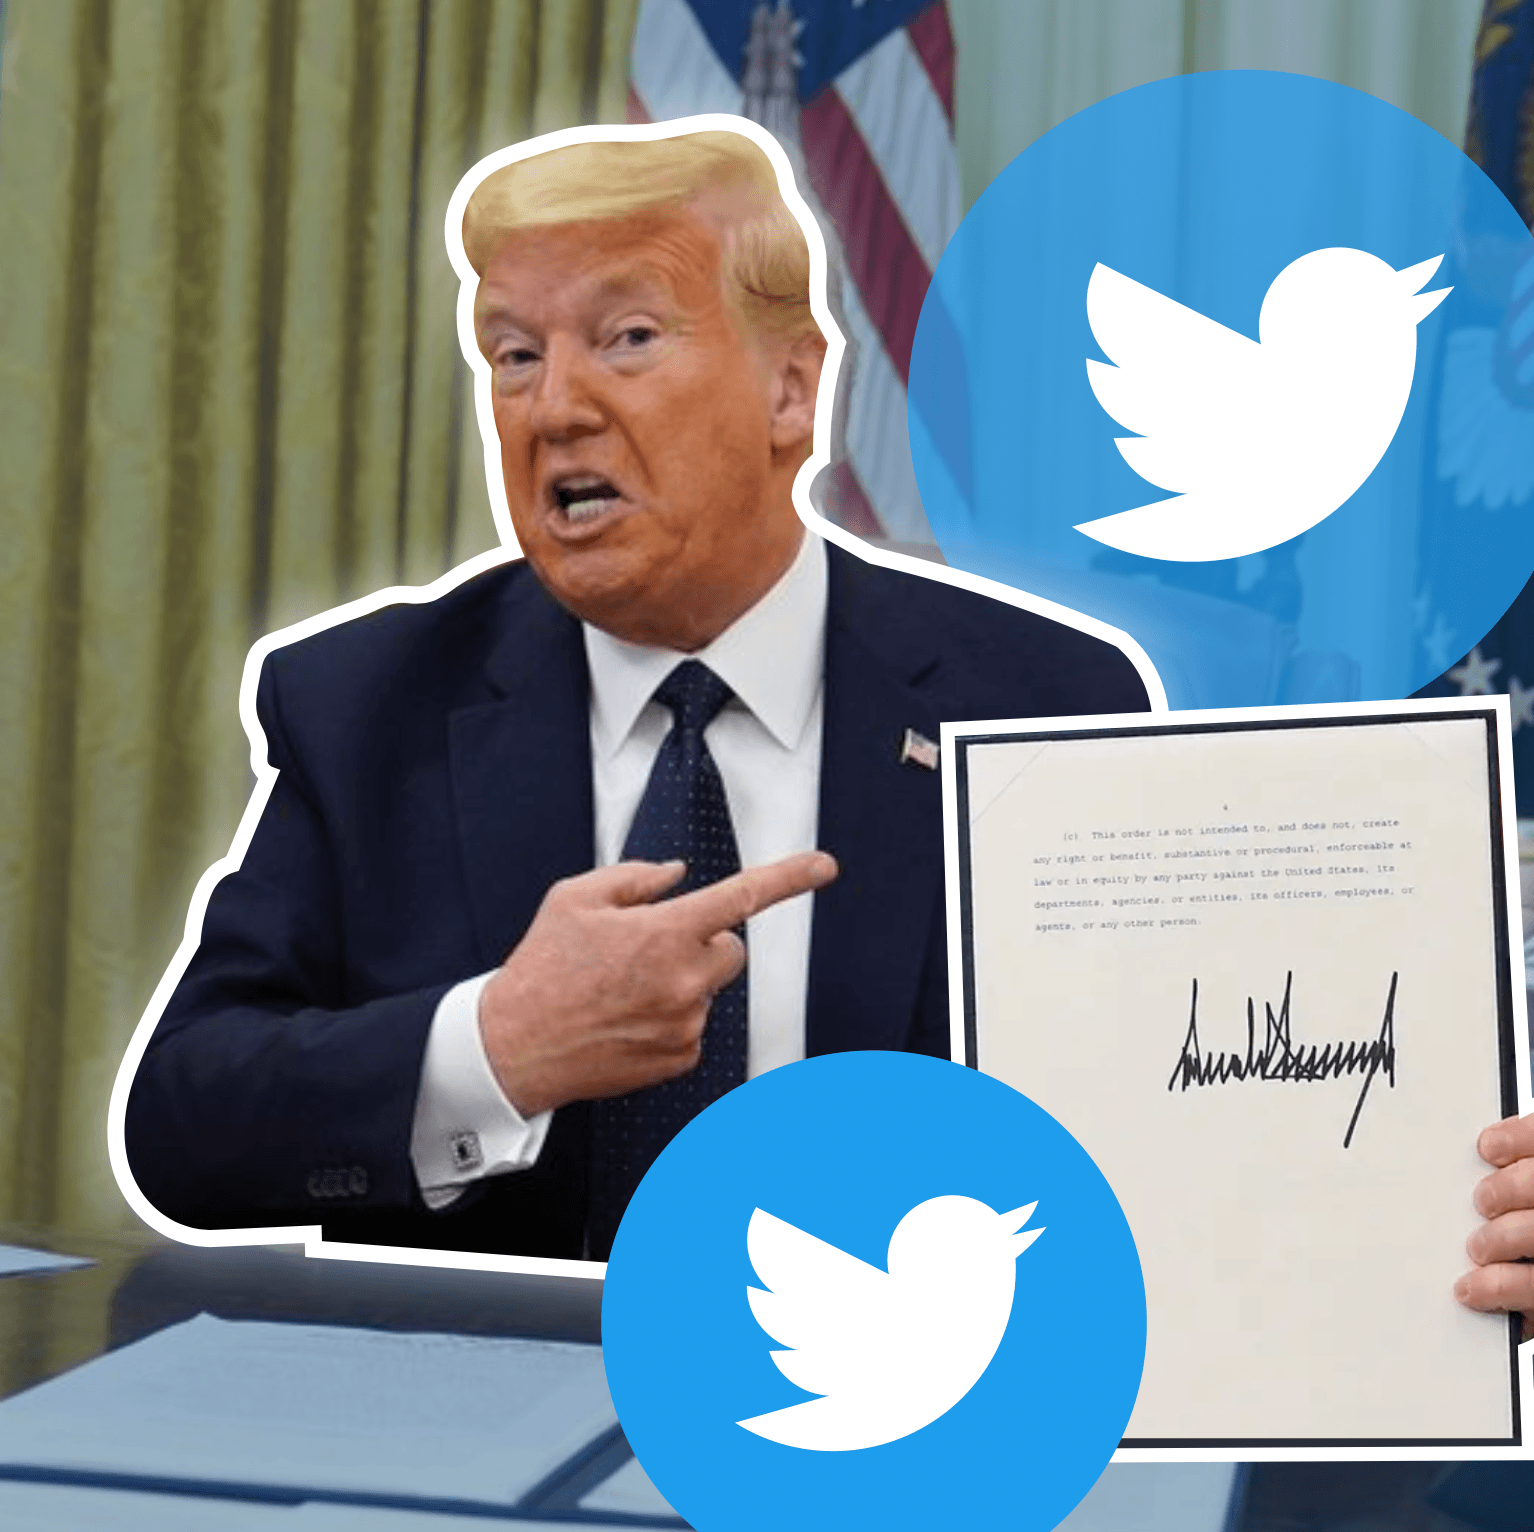 Trump's Social Media Executive Order & Twitter Battle Explained